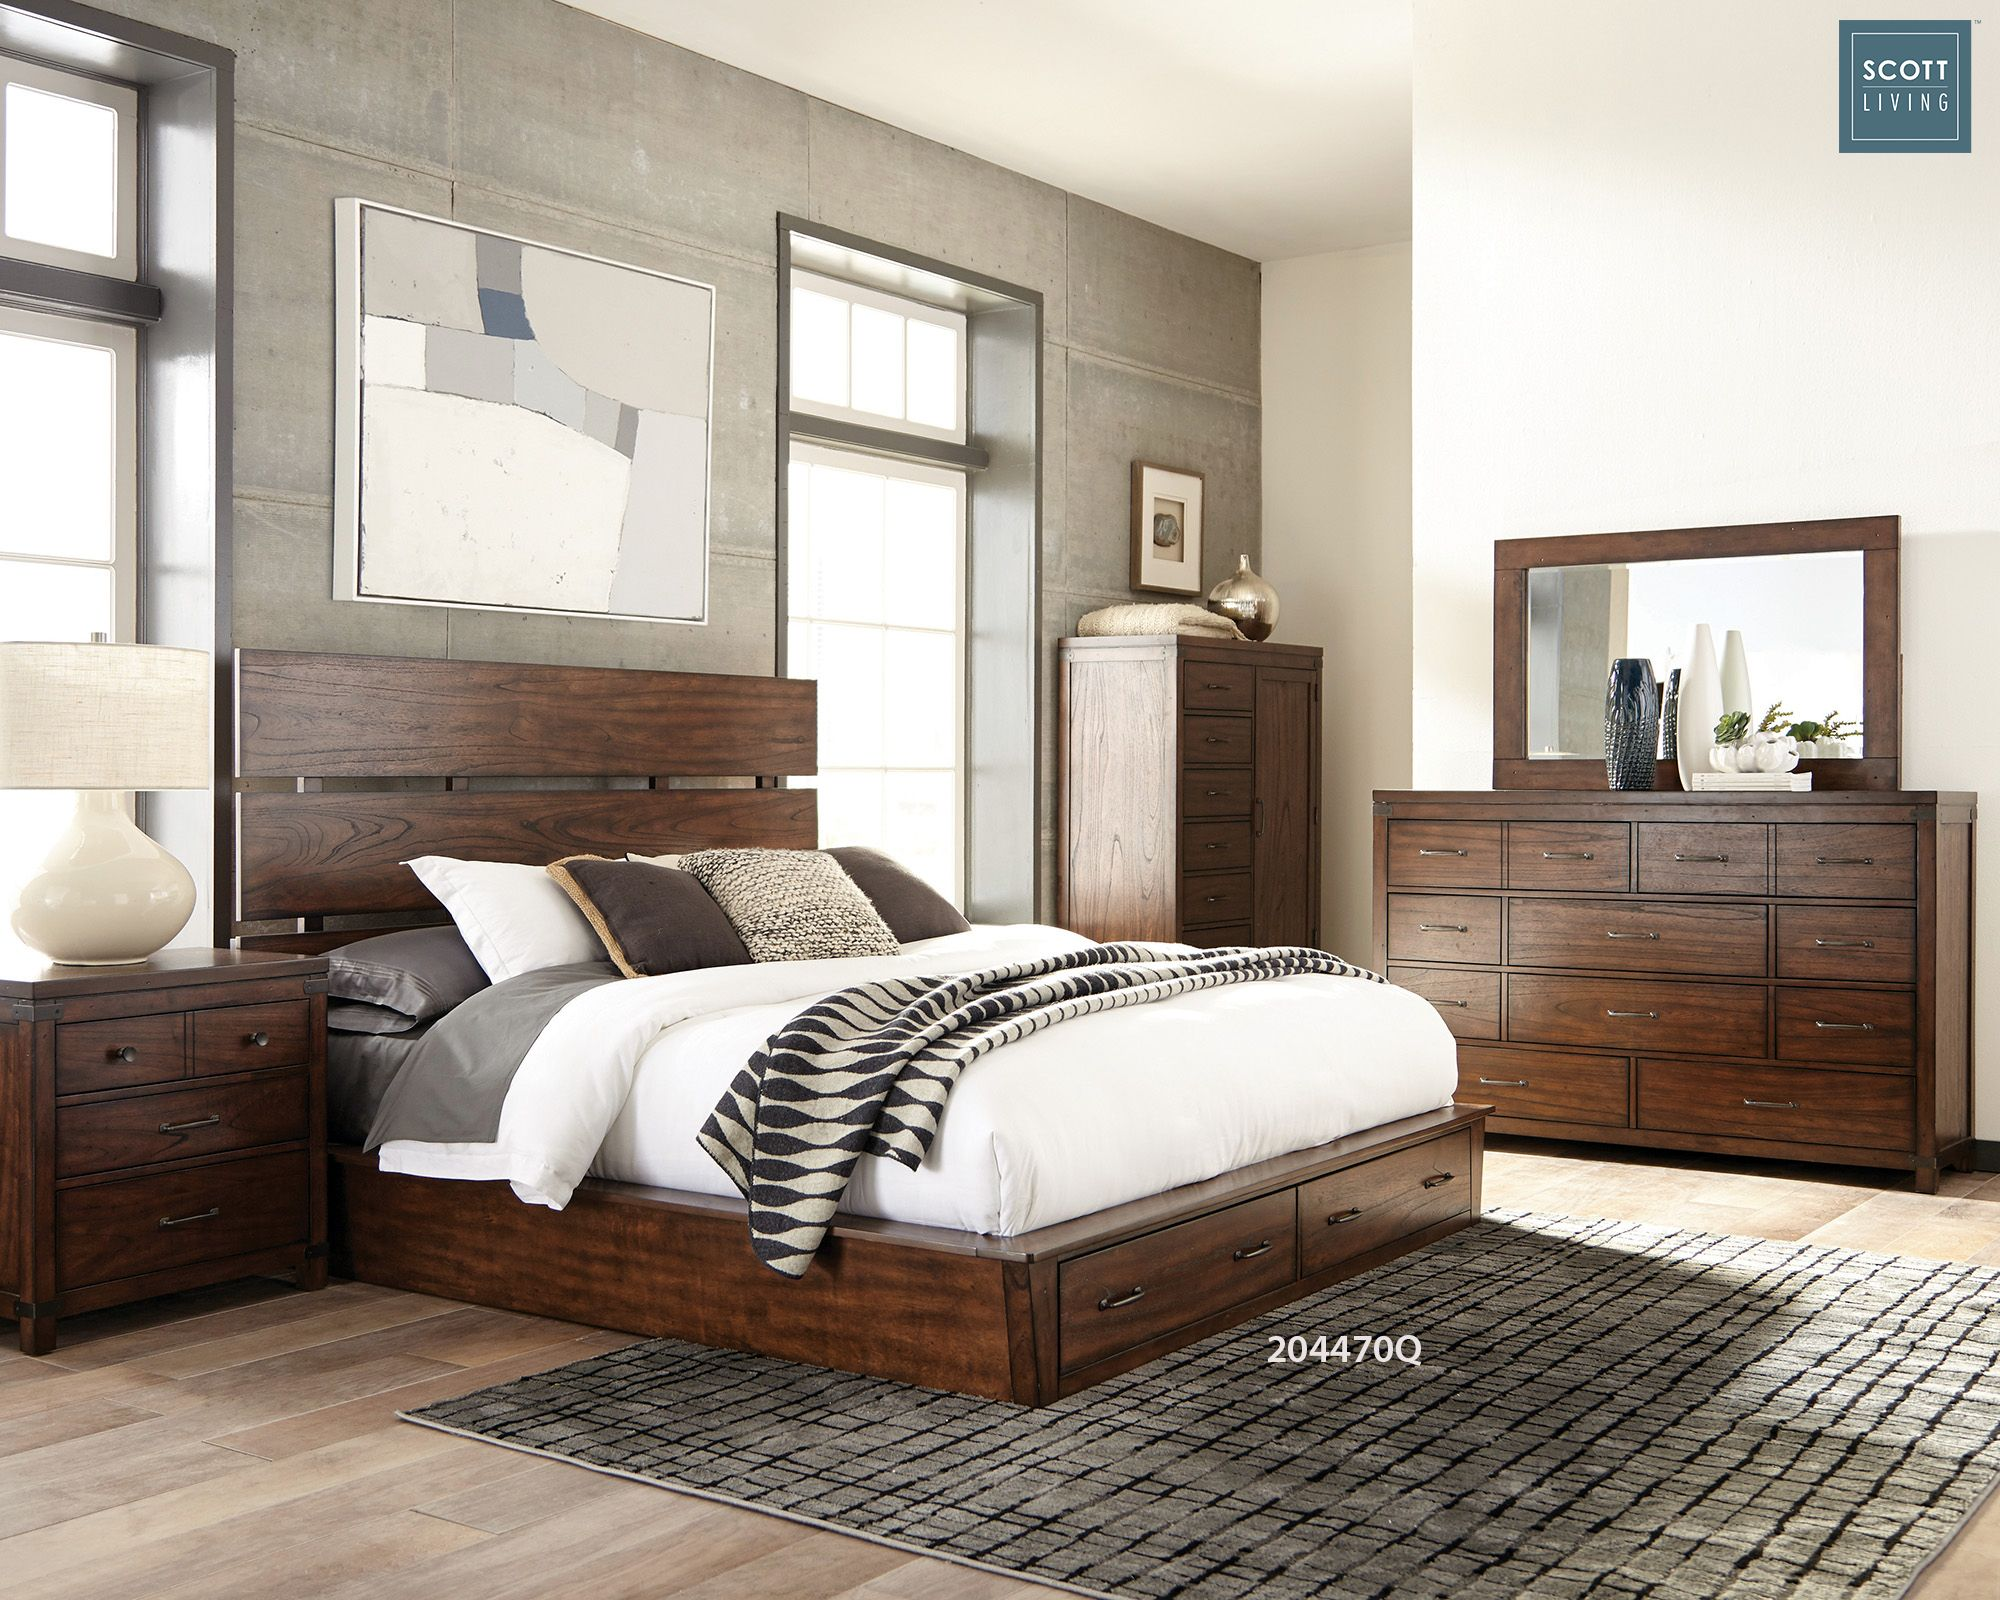 Scot Living Saturday Alert Product Feature The Matheson Bedroom Collection This Transitio Bedroom Sets Queen Bedroom Set California King Bedroom Sets